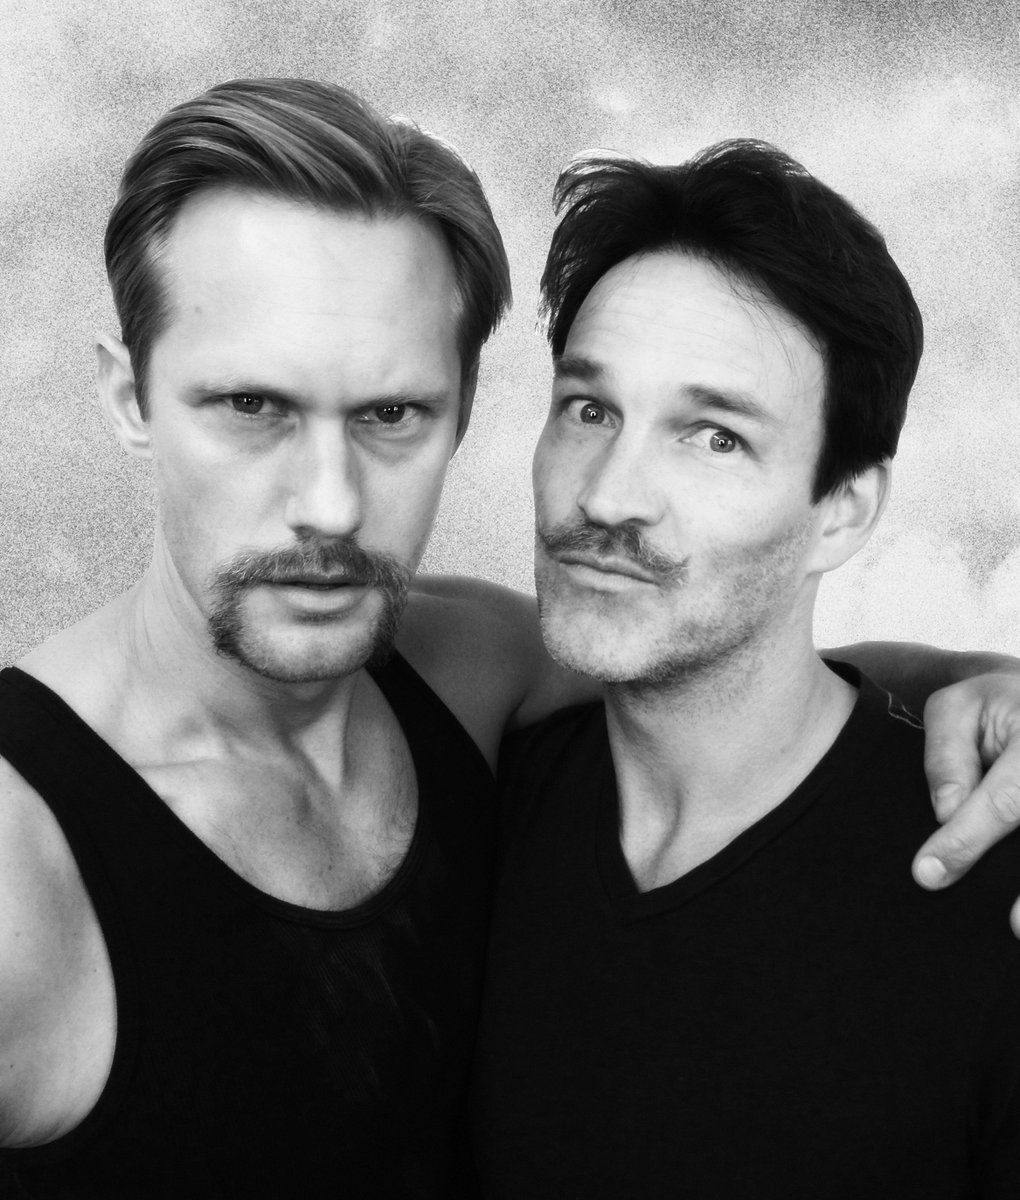 stephen moyer on twitter wishing my lovely gorilla all best 4 stephen moyer on twitter wishing my lovely gorilla all best 4 the big opening of tarzan today from his little chimp tbt alexanderskarsgard